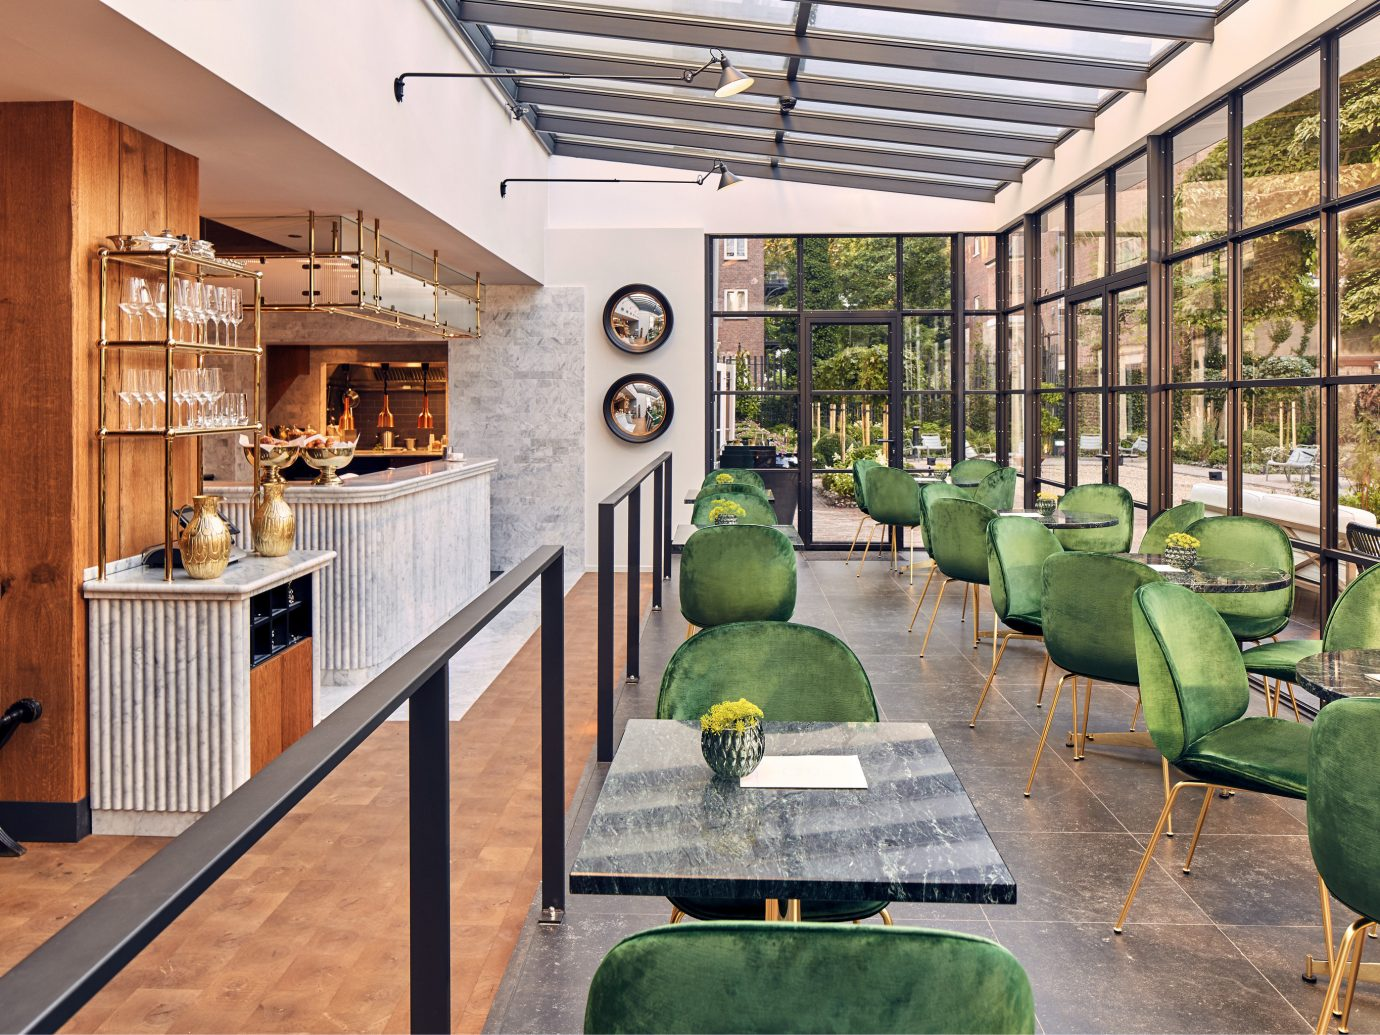 Amsterdam Boutique Hotels Hotels The Netherlands green indoor property room building estate home house real estate interior design backyard Courtyard outdoor structure farmhouse cottage furniture area